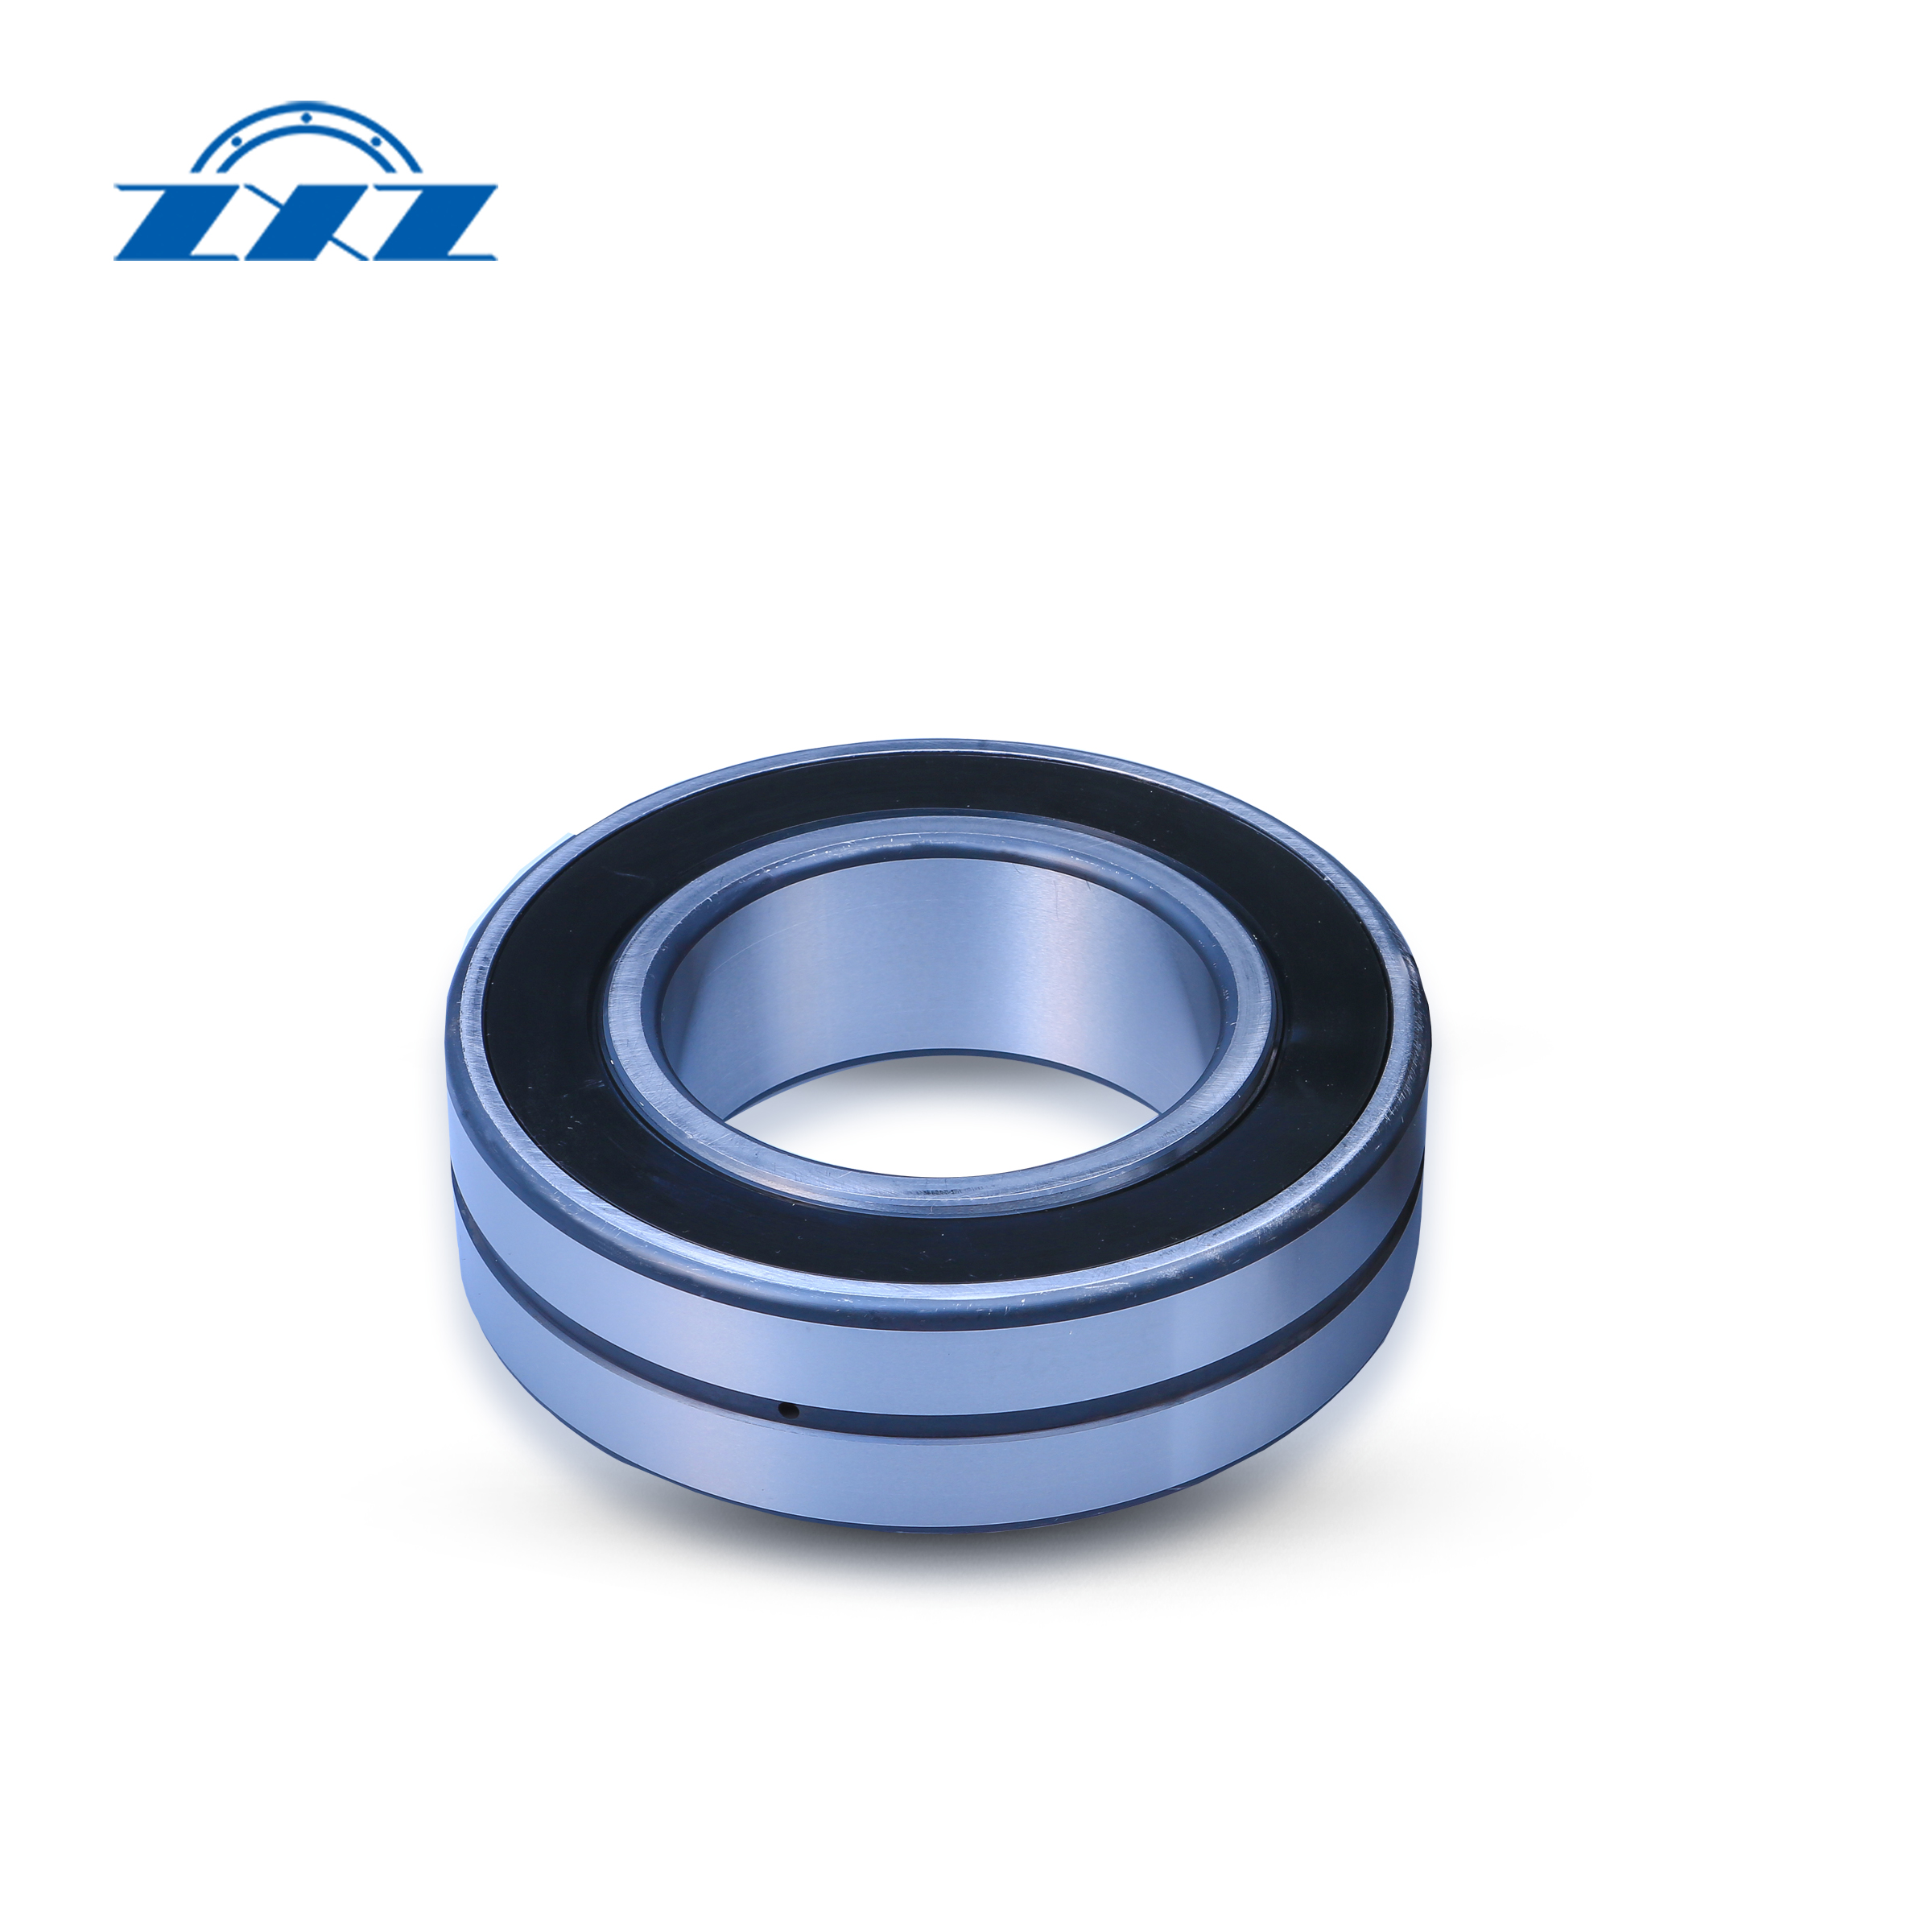 H series self-aligning roller bearings